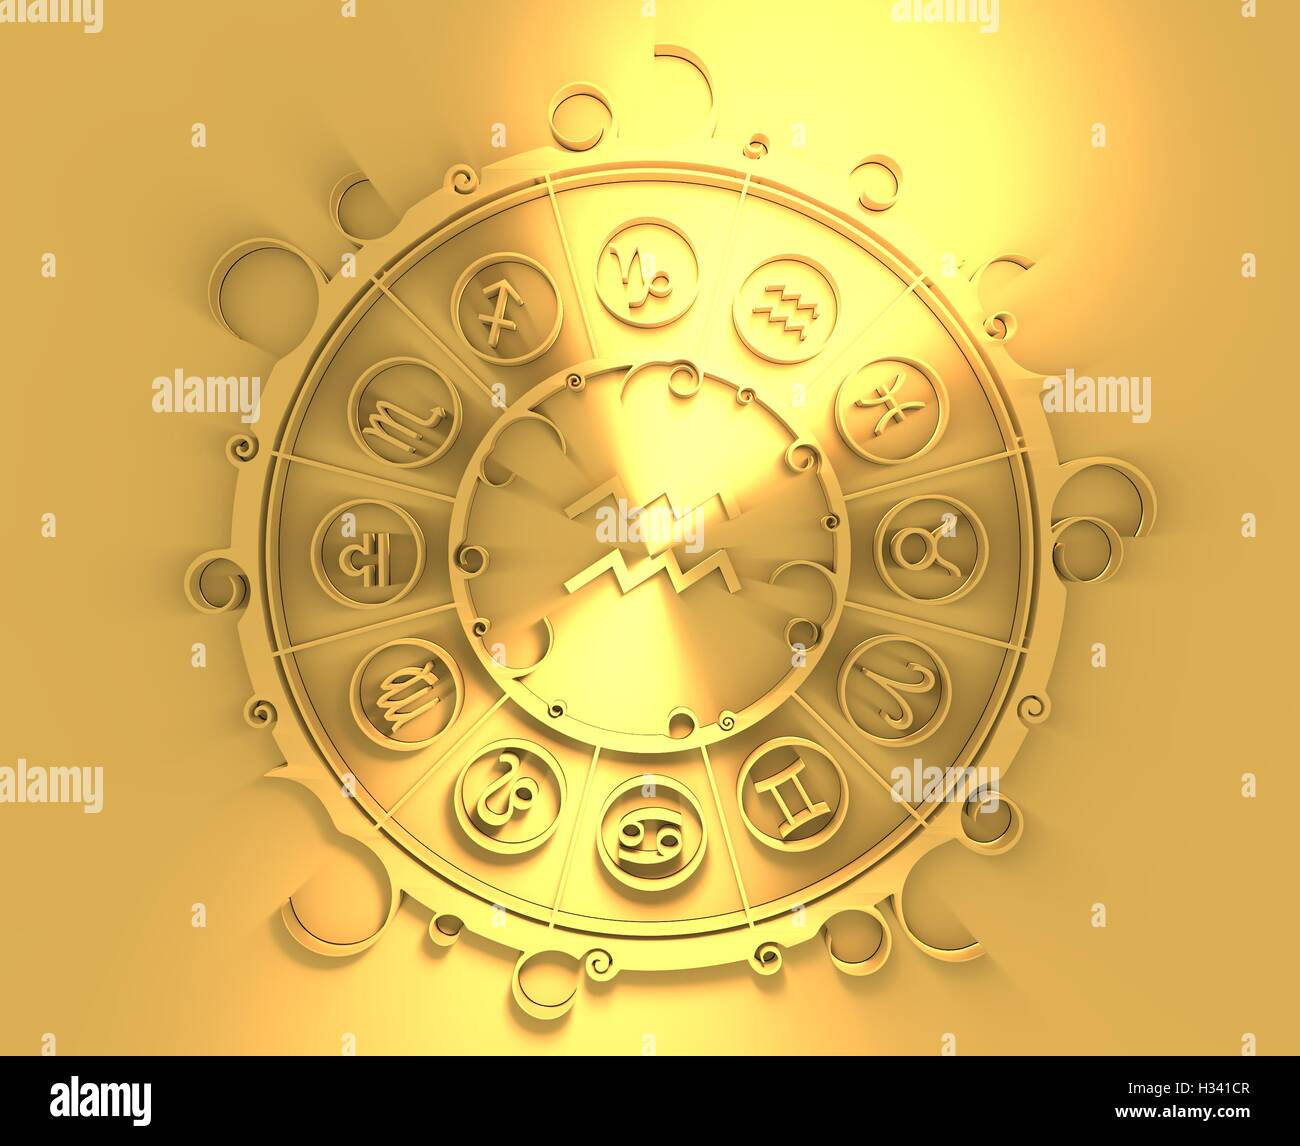 Astrology symbols in golden circle water bearer sign stock photo astrology symbols in golden circle water bearer sign biocorpaavc Choice Image